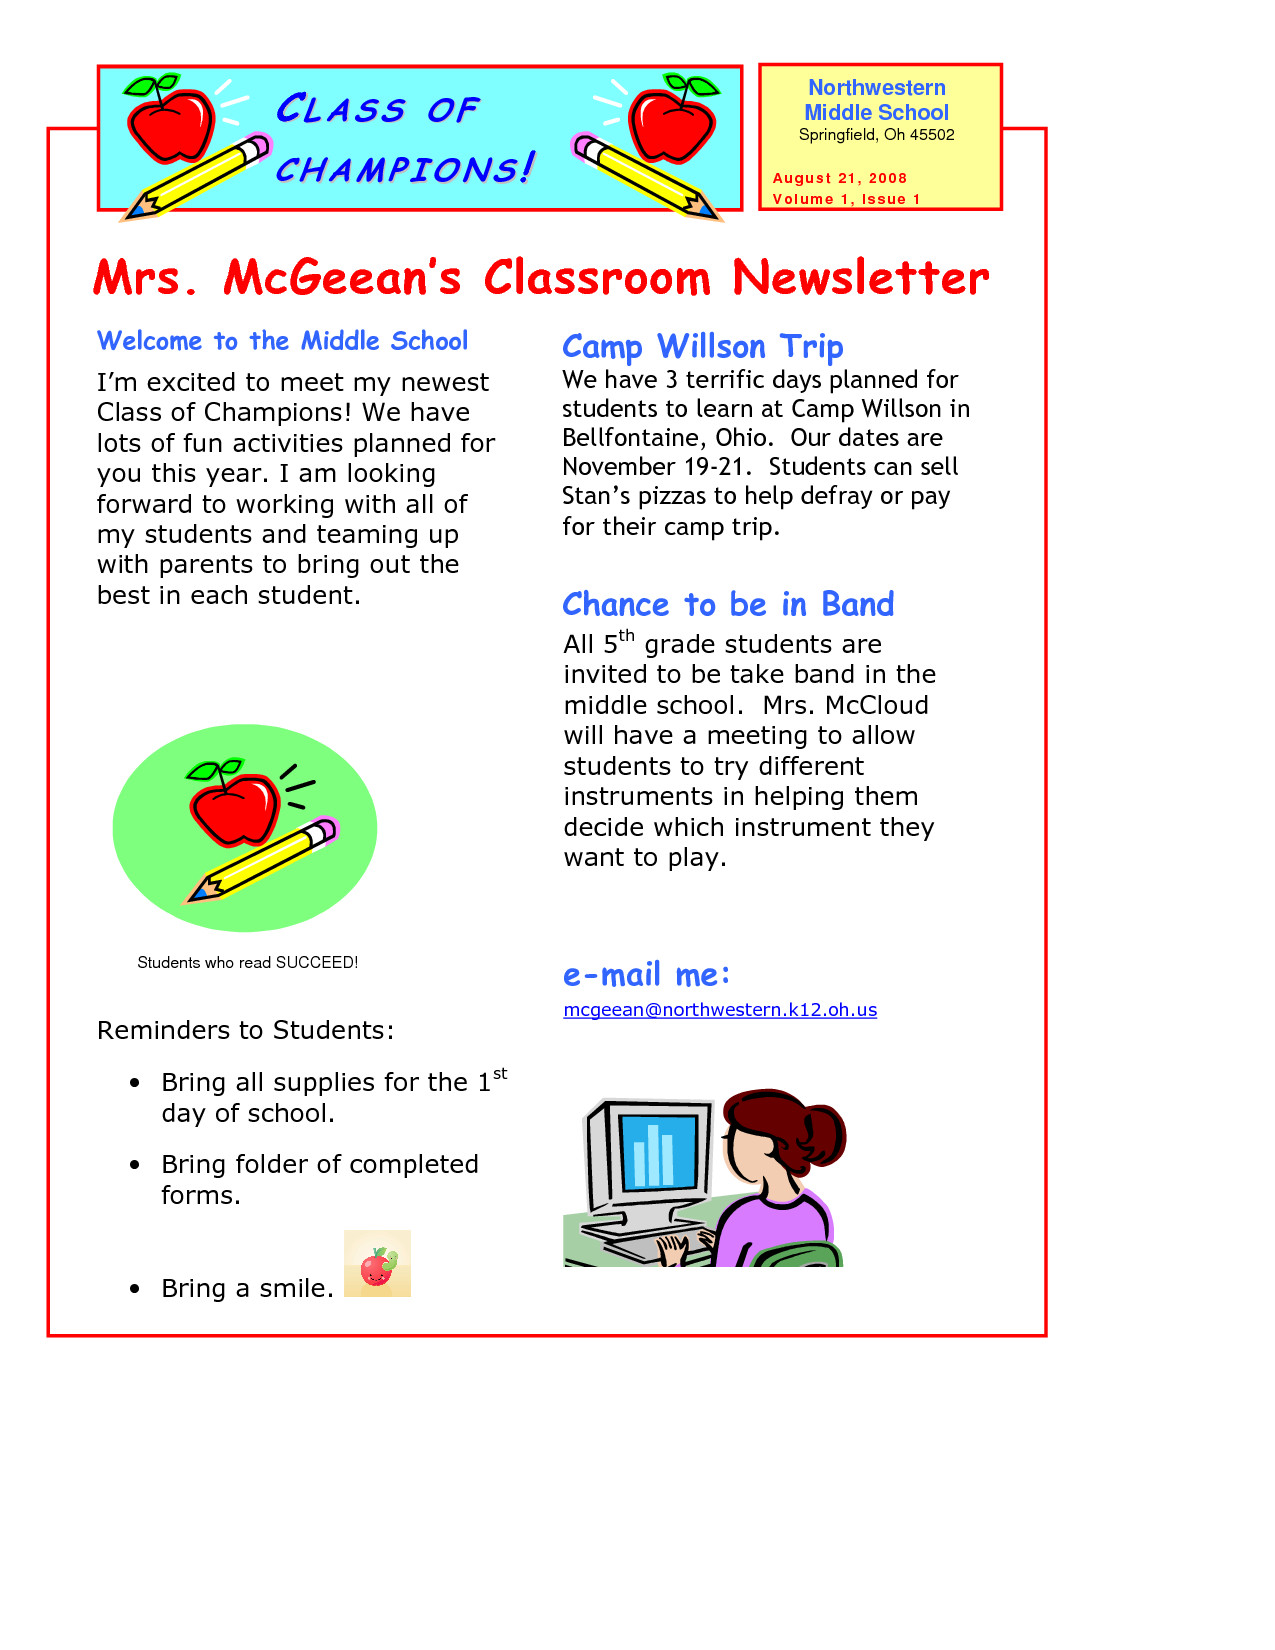 Newsletter Templates for Teachers Classroom Newsletter Template